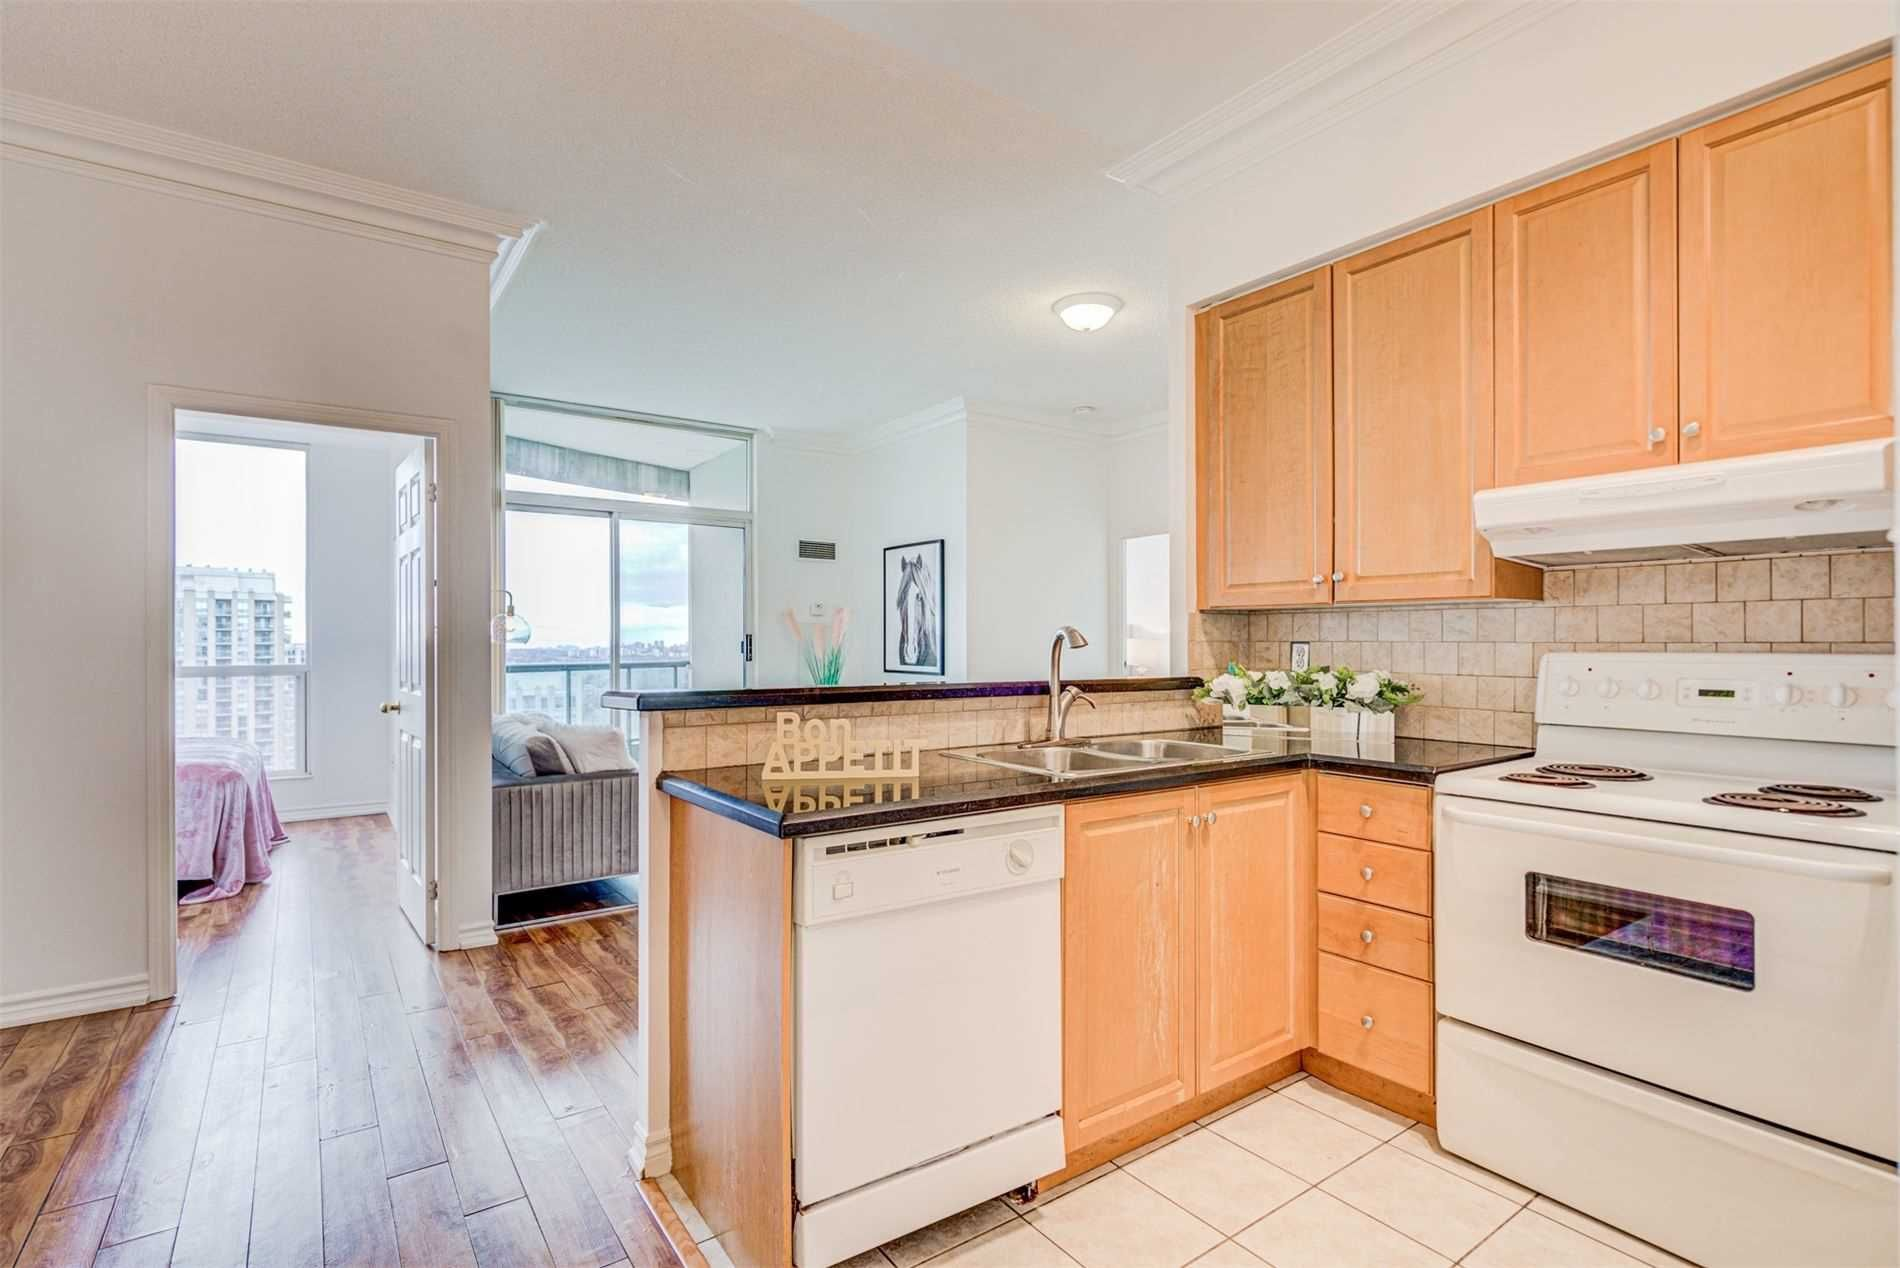 7 Lorraine Dr, unit Uph09 for rent in Toronto - image #2